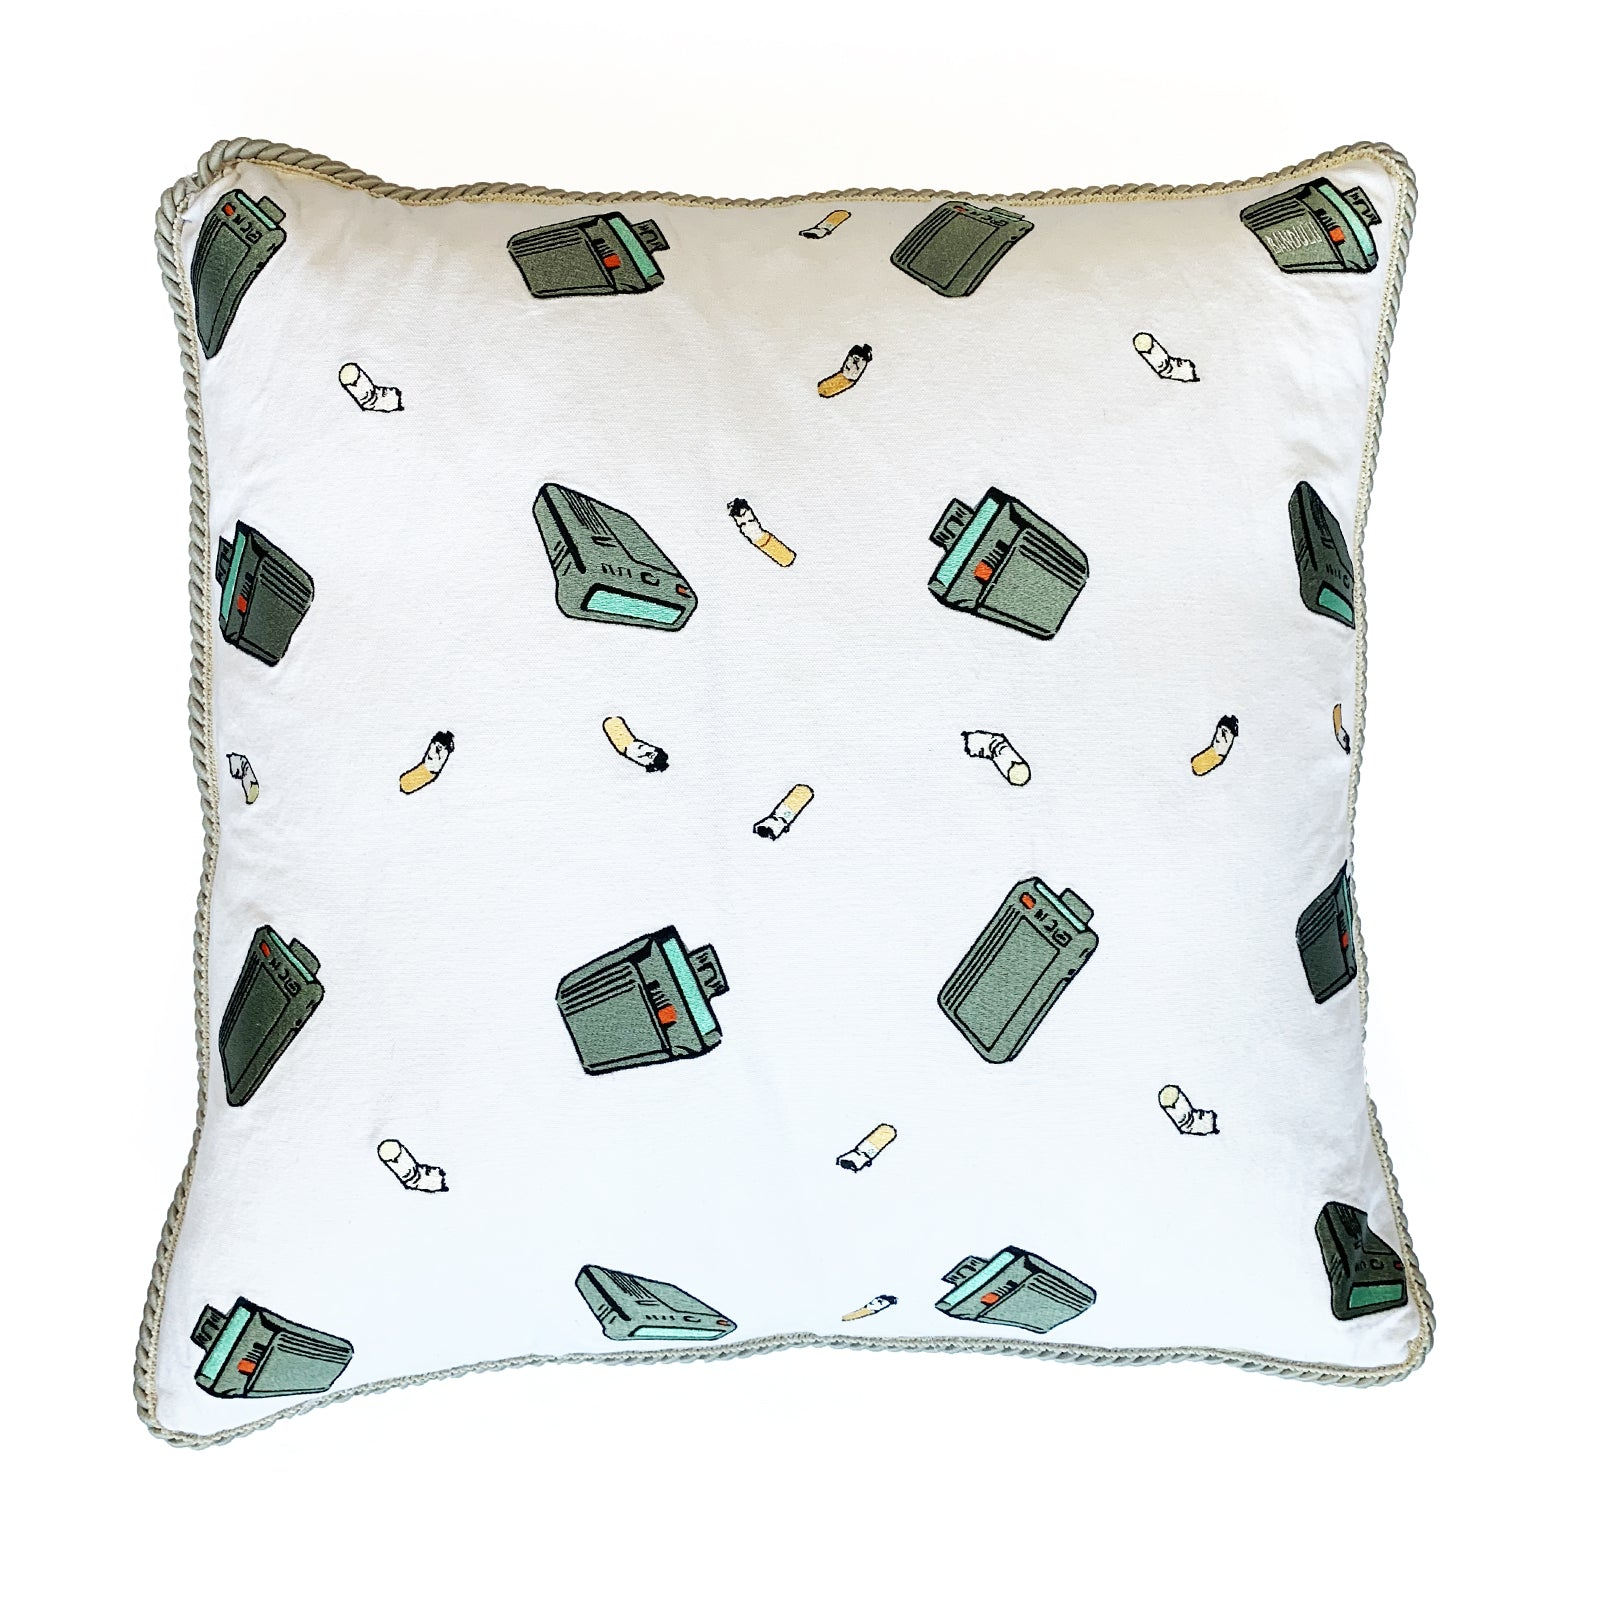 "BANDULU "" BEEPER AND CIGS "" 24 INCH PILLOW"